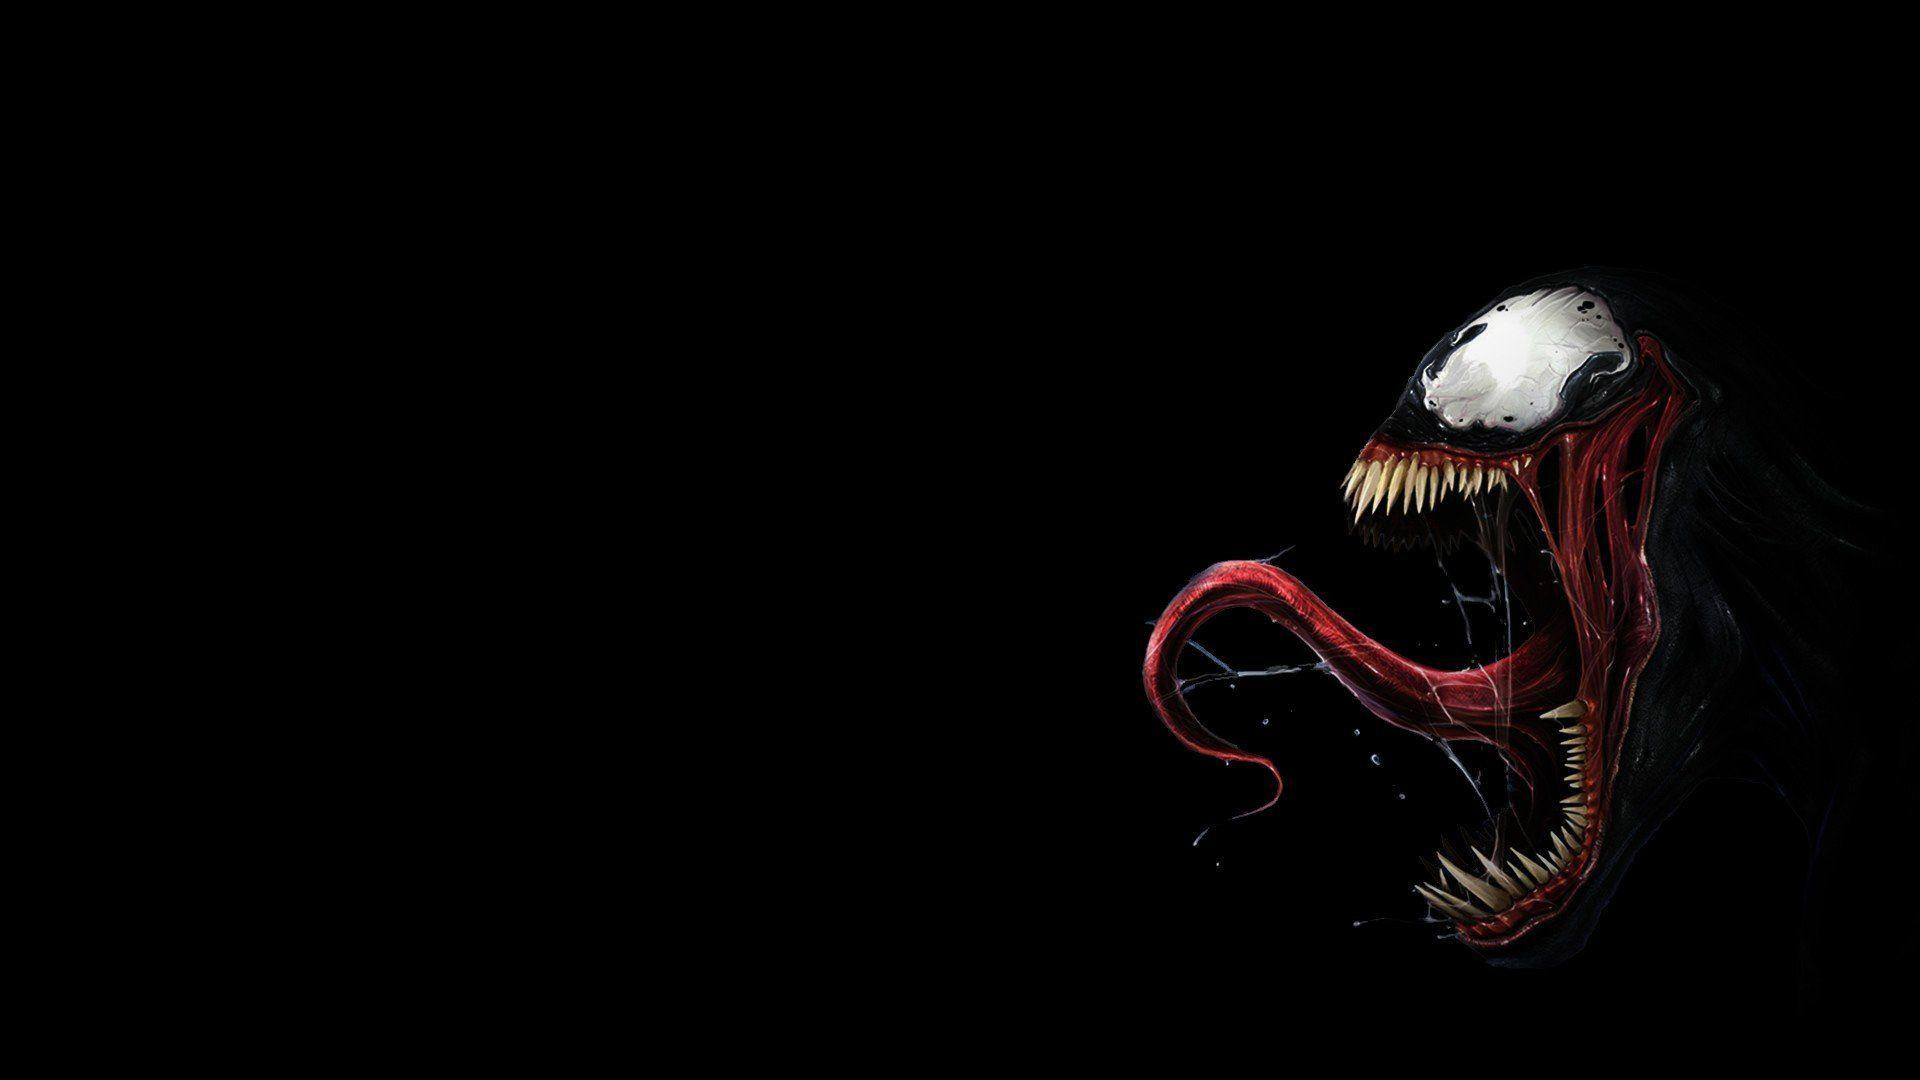 Venom 2018 Wallpapers Wallpaper Cave